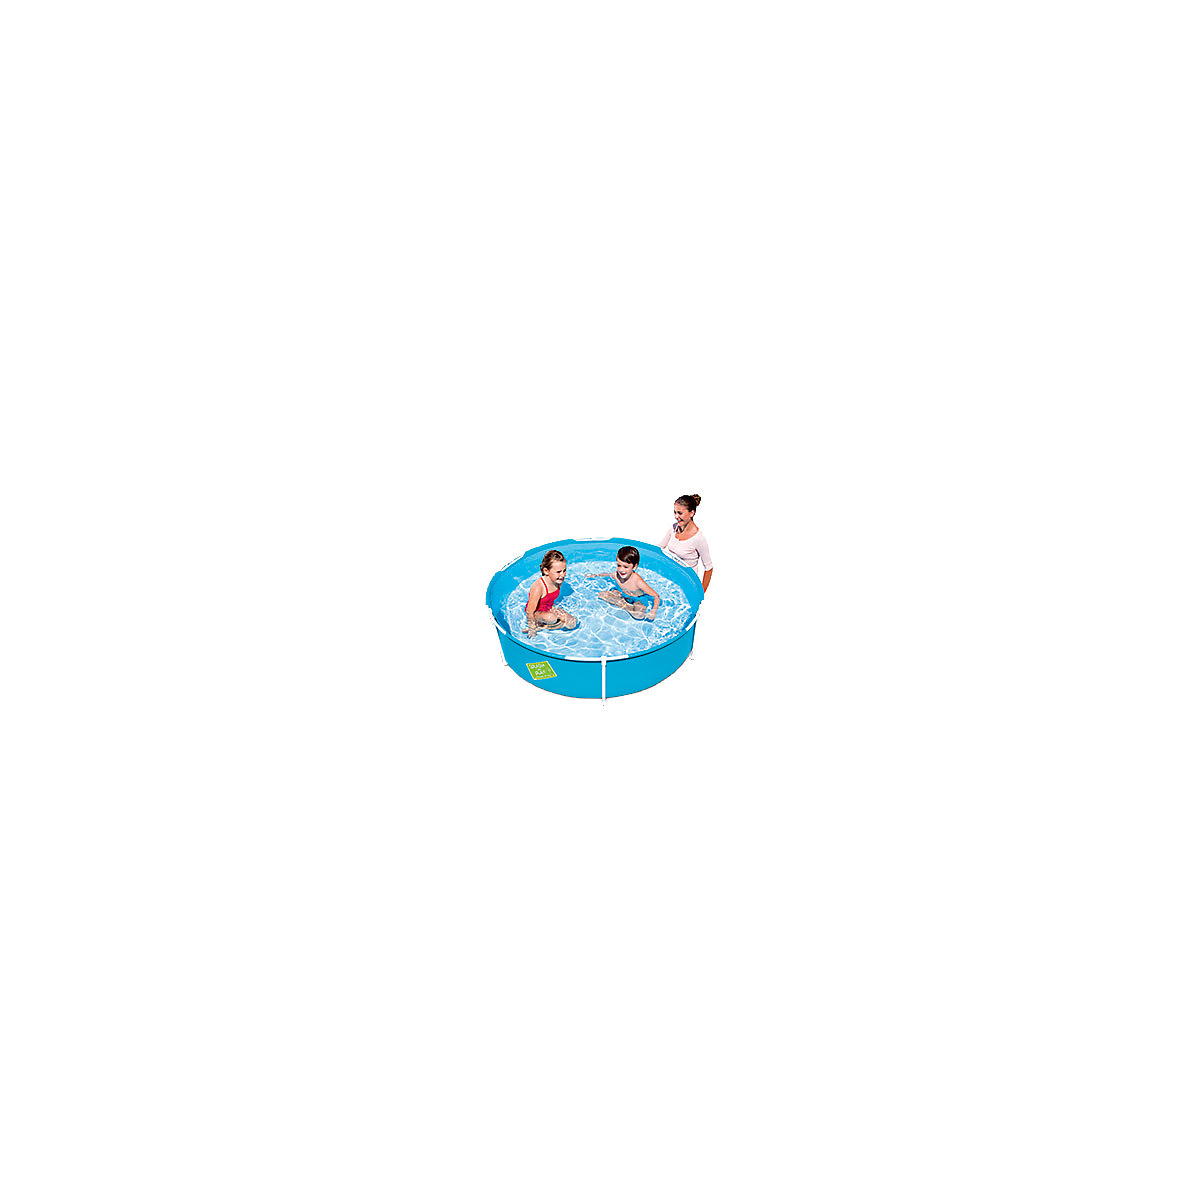 BESTWAY Swimming Pool 4292354 inflatable pools Accessories Activity & Gear tub Kids Baby for children large adult swimming pool children swimming pools different size pvc pool inflate swimming tools